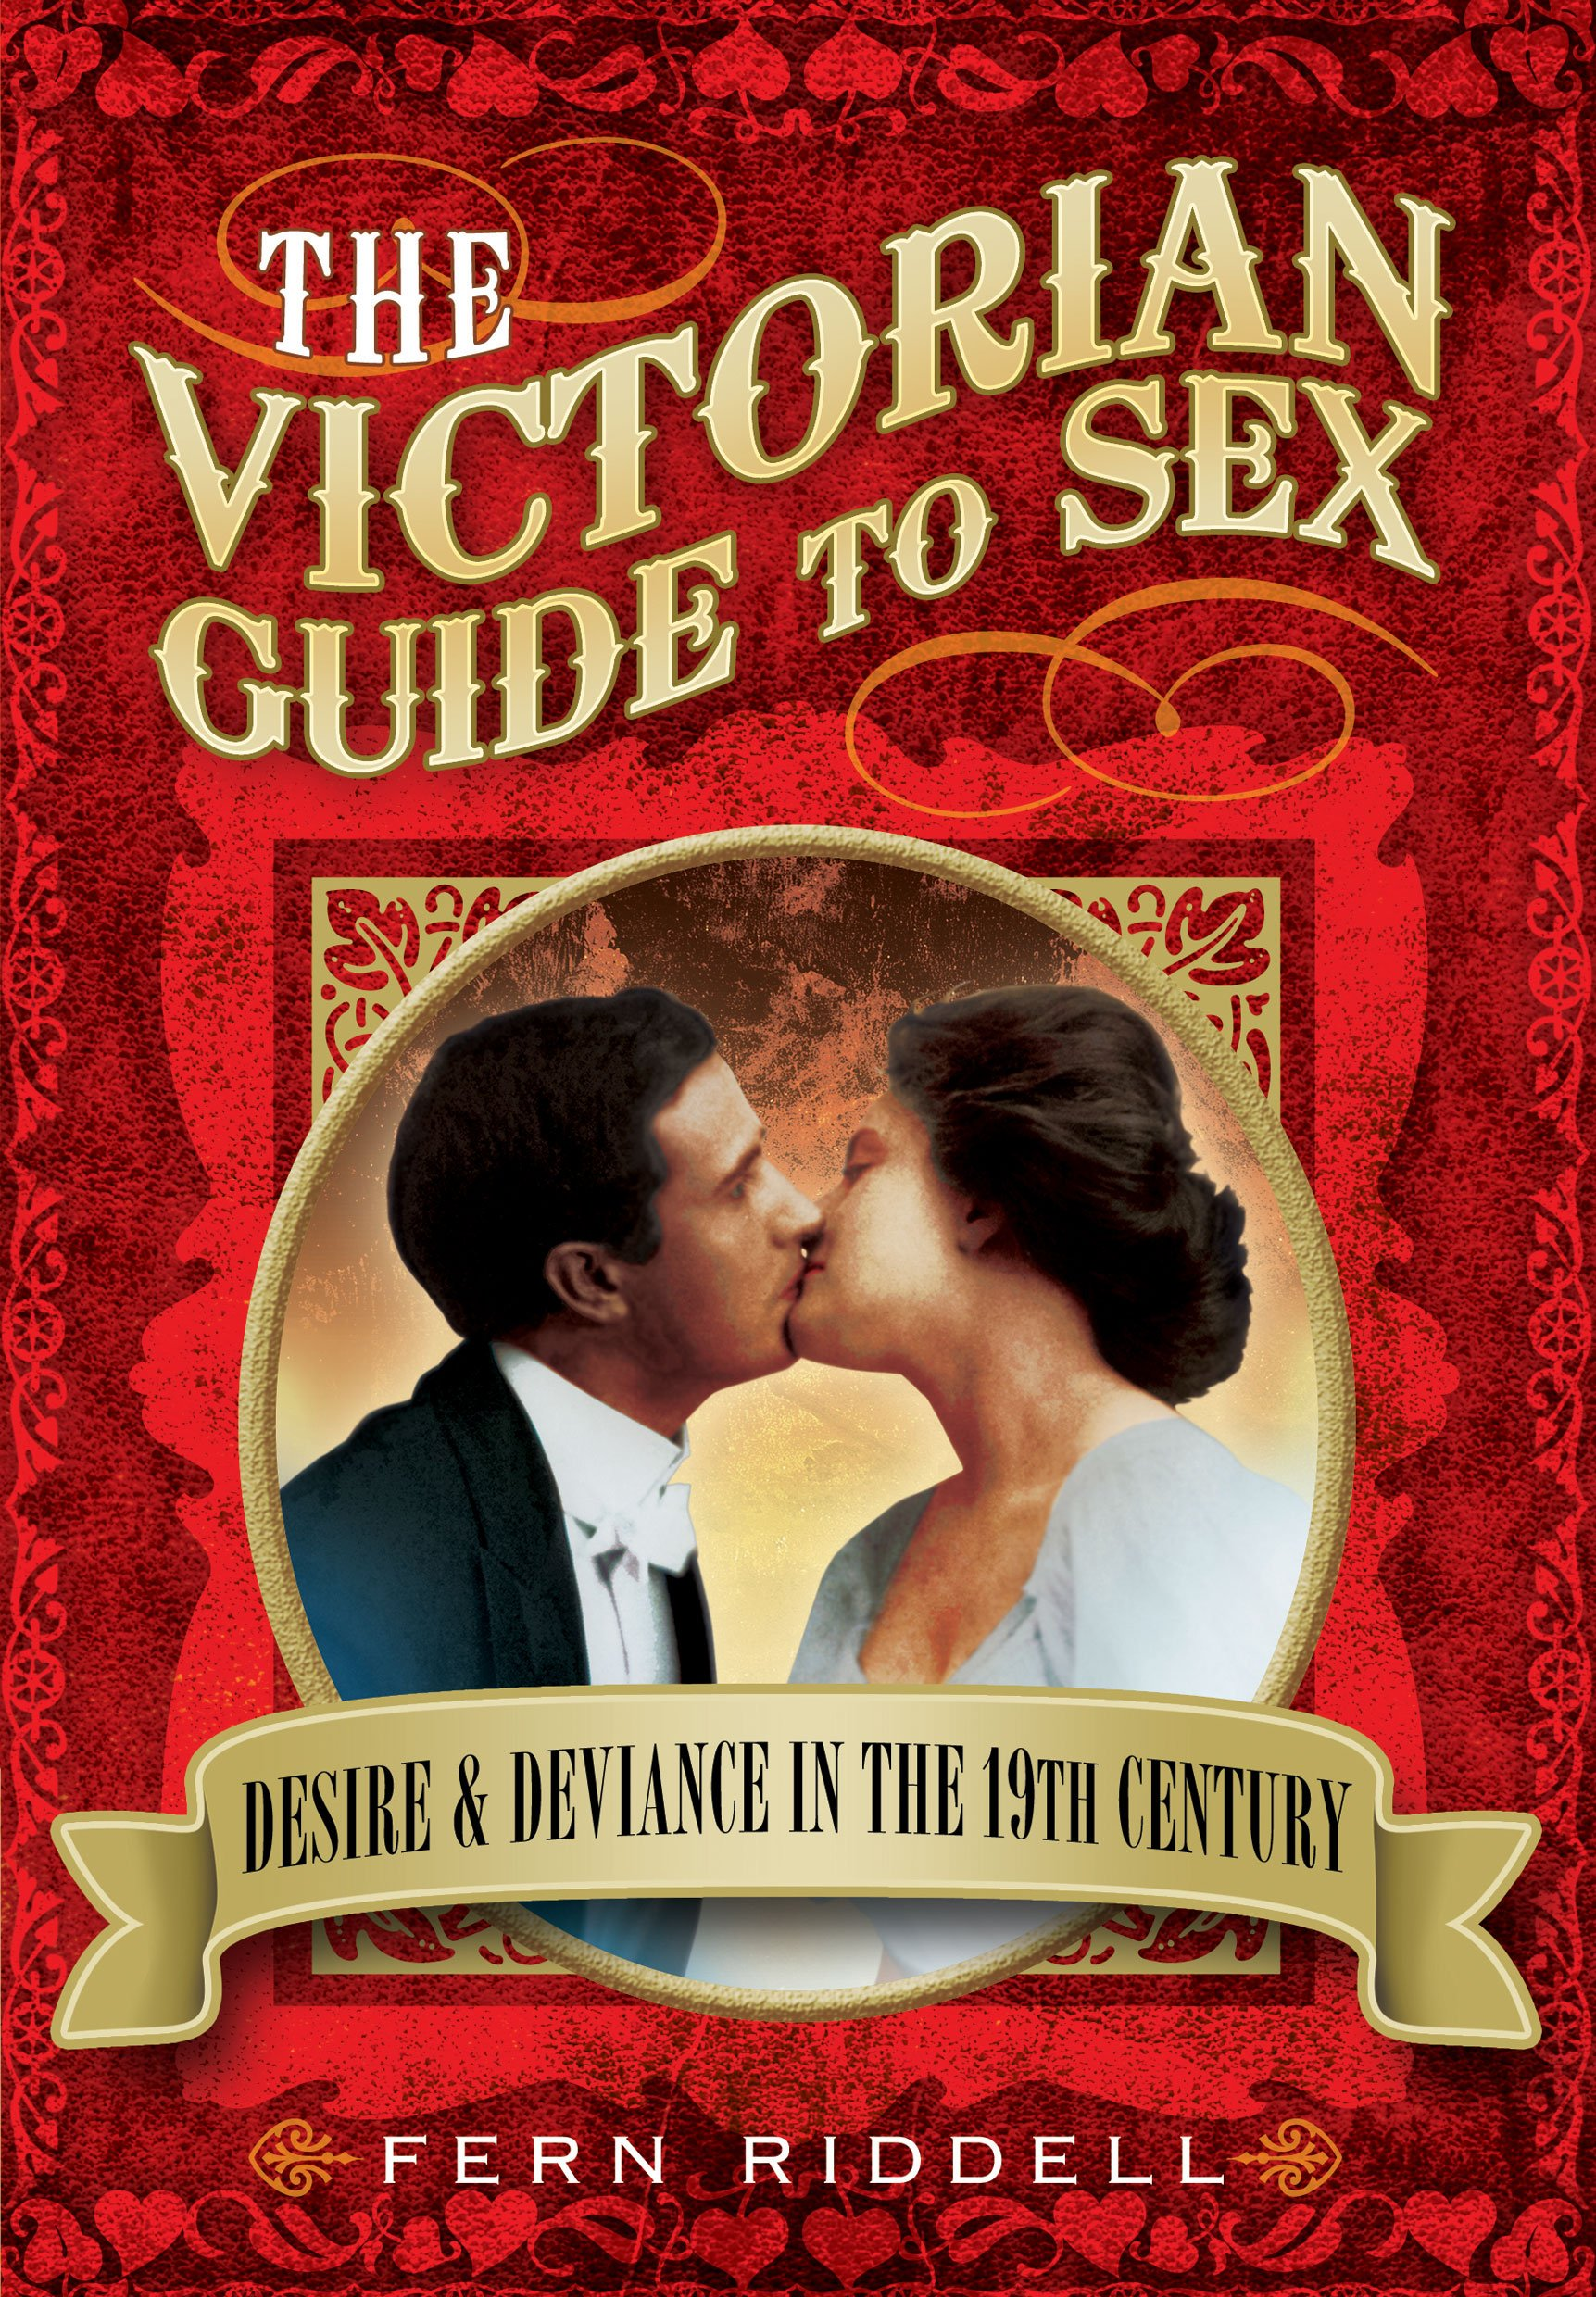 The Victorian Guide to Sex: Desire and deviance in the 19th century  Paperback – July 31, 2014